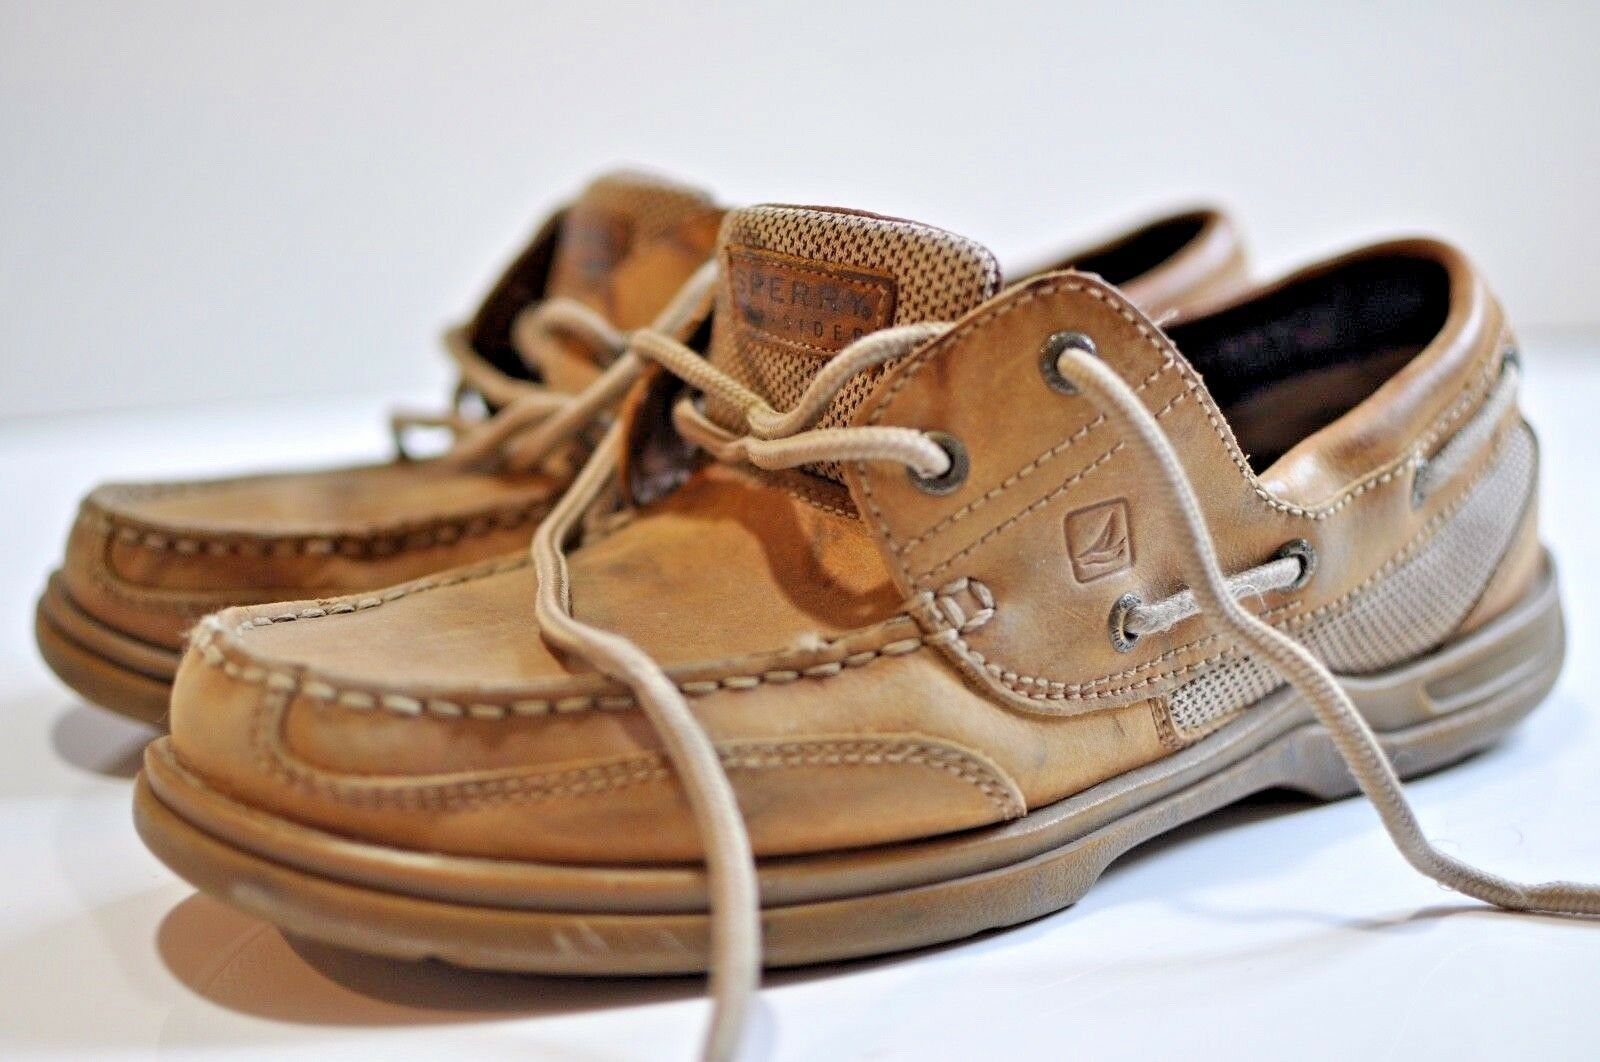 Sperry Top-Sider Mens leather boat shoe size 10